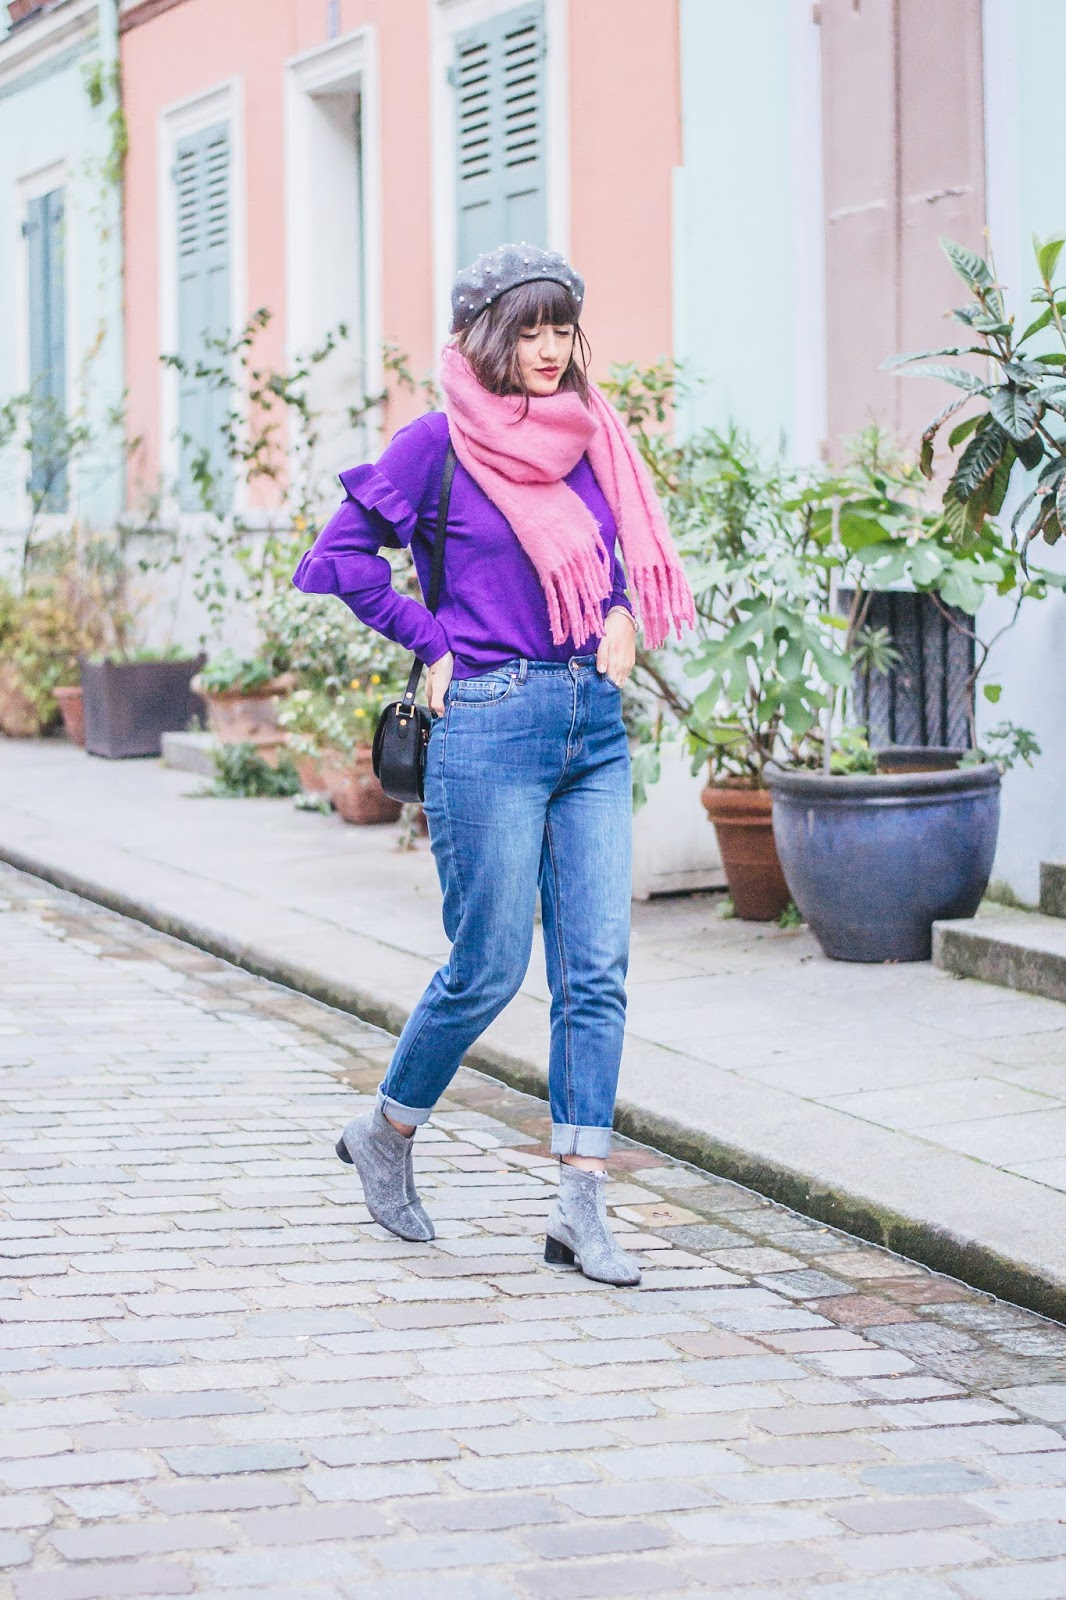 meetmeinparee - Purple Sweater and Vibrant Homes